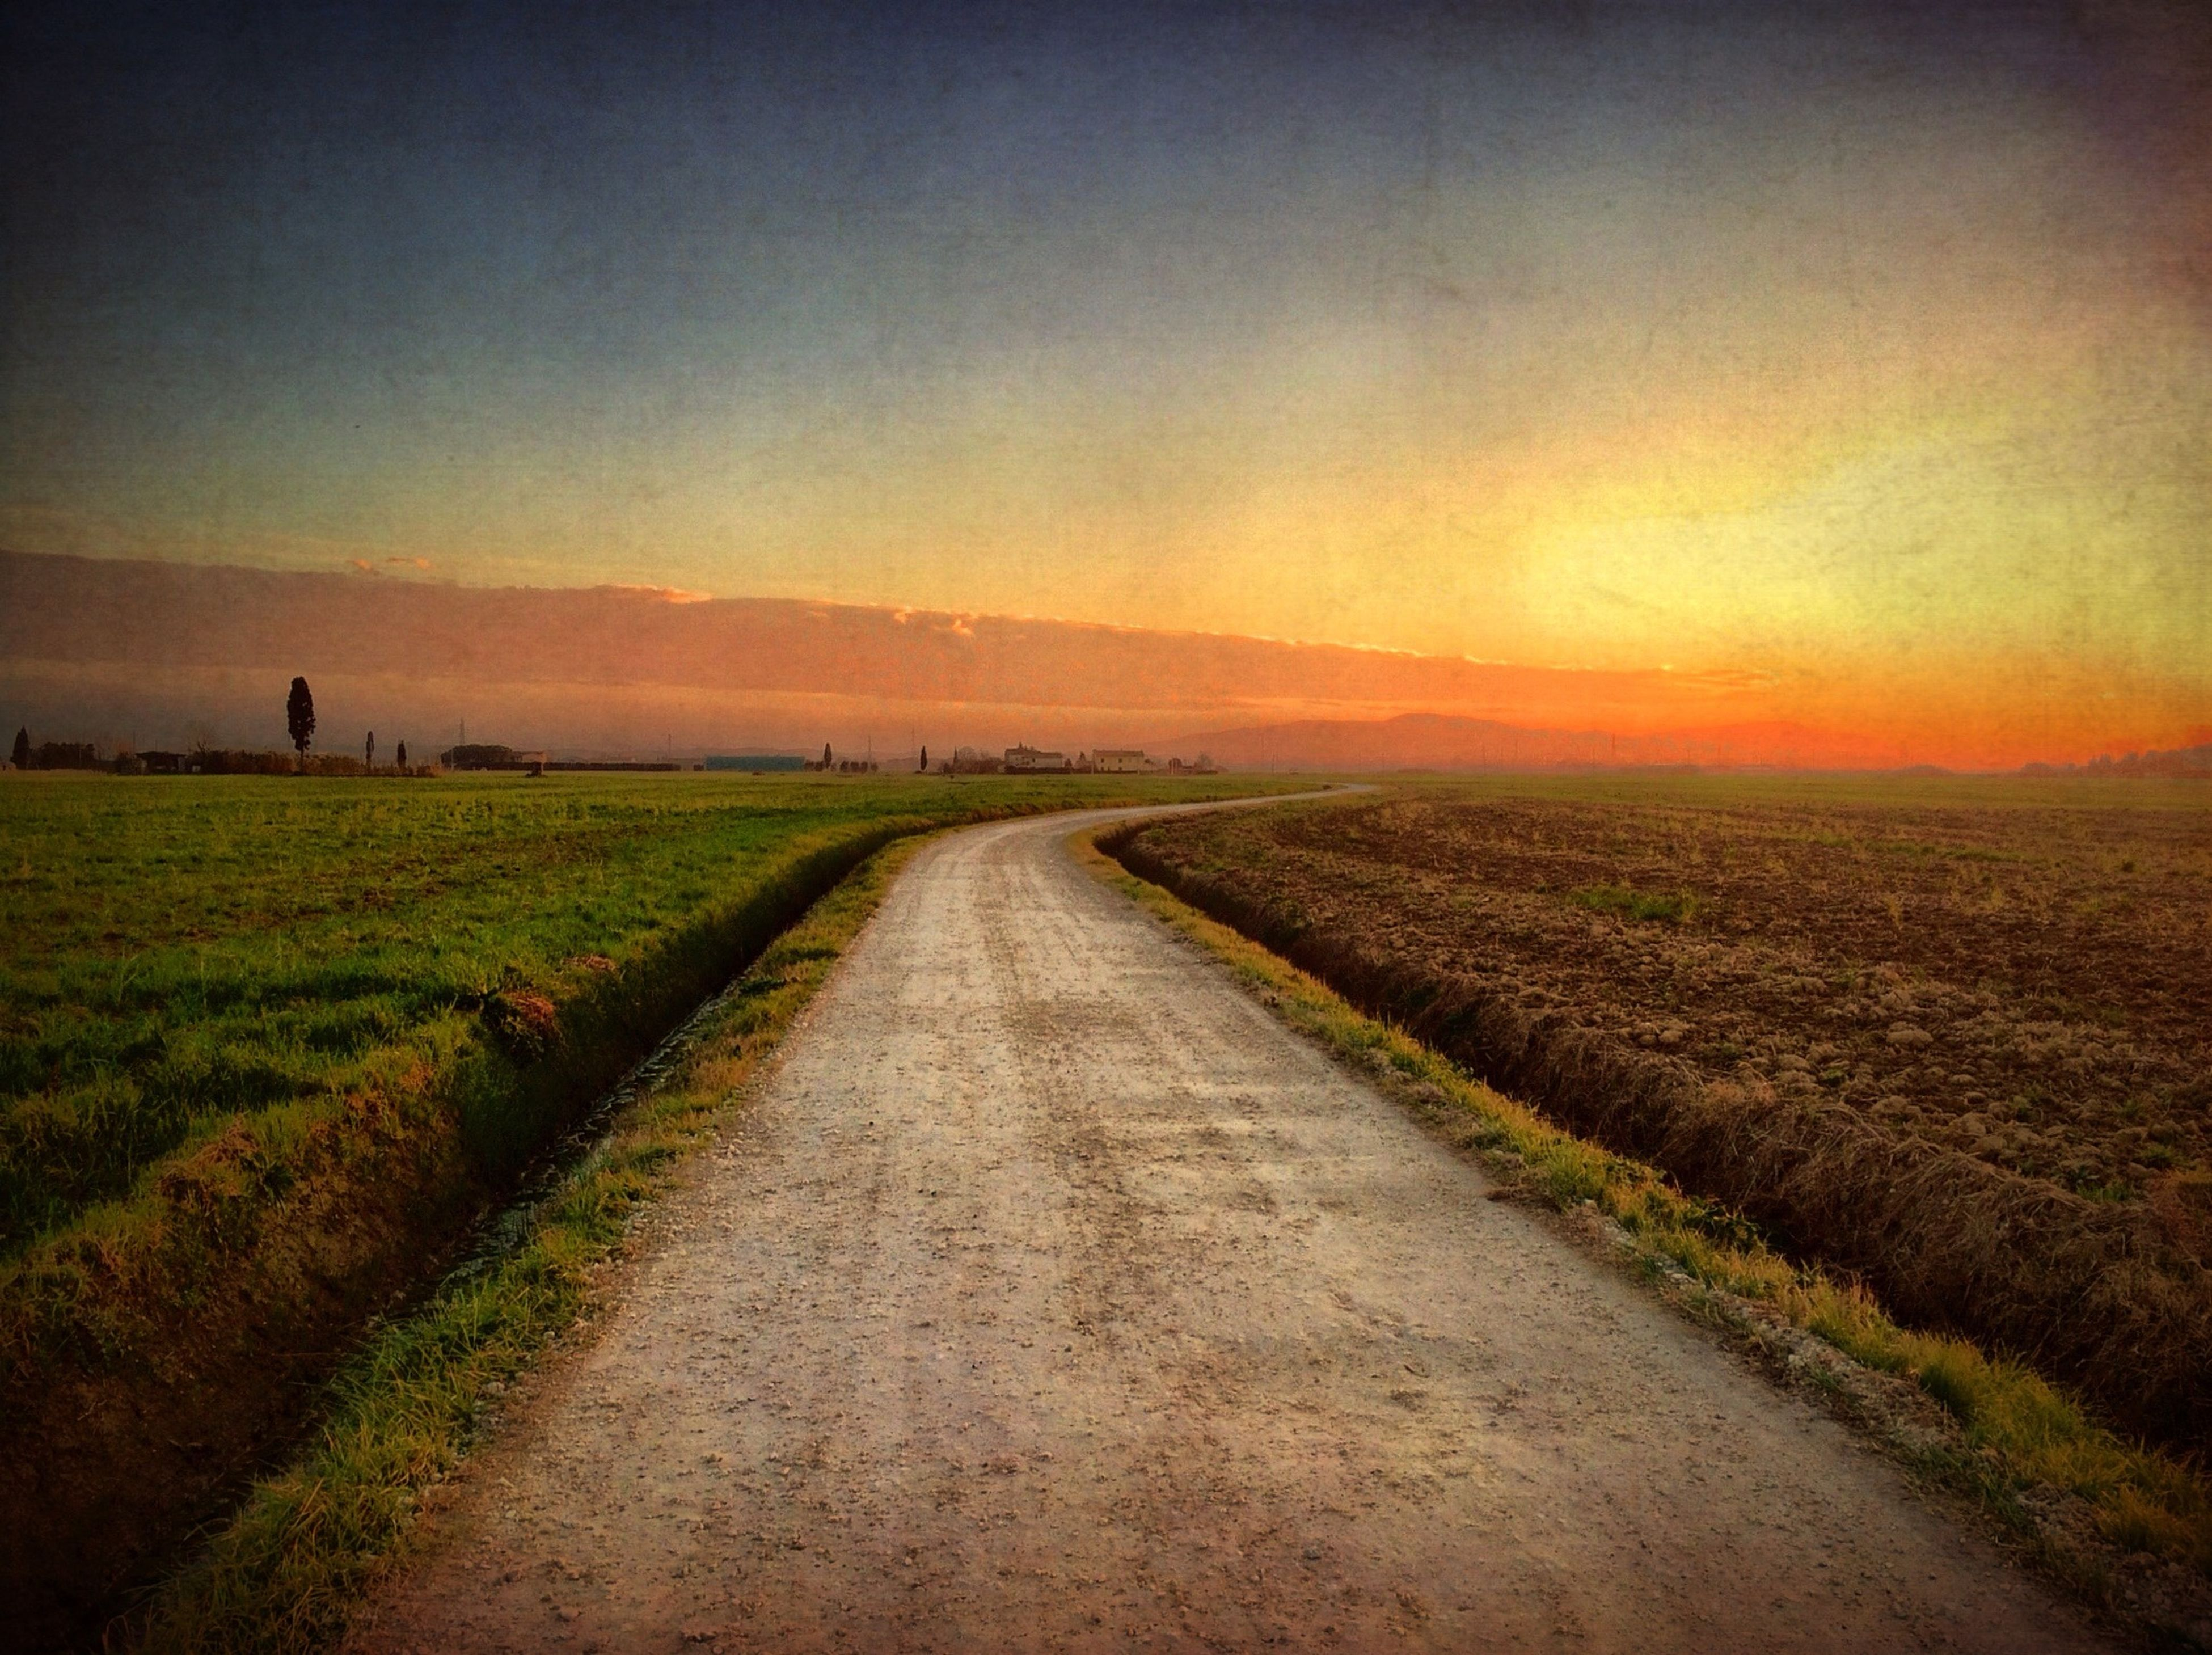 the way forward, landscape, sunset, tranquil scene, field, tranquility, diminishing perspective, rural scene, scenics, vanishing point, beauty in nature, nature, sky, country road, grass, road, dirt road, agriculture, horizon over land, orange color